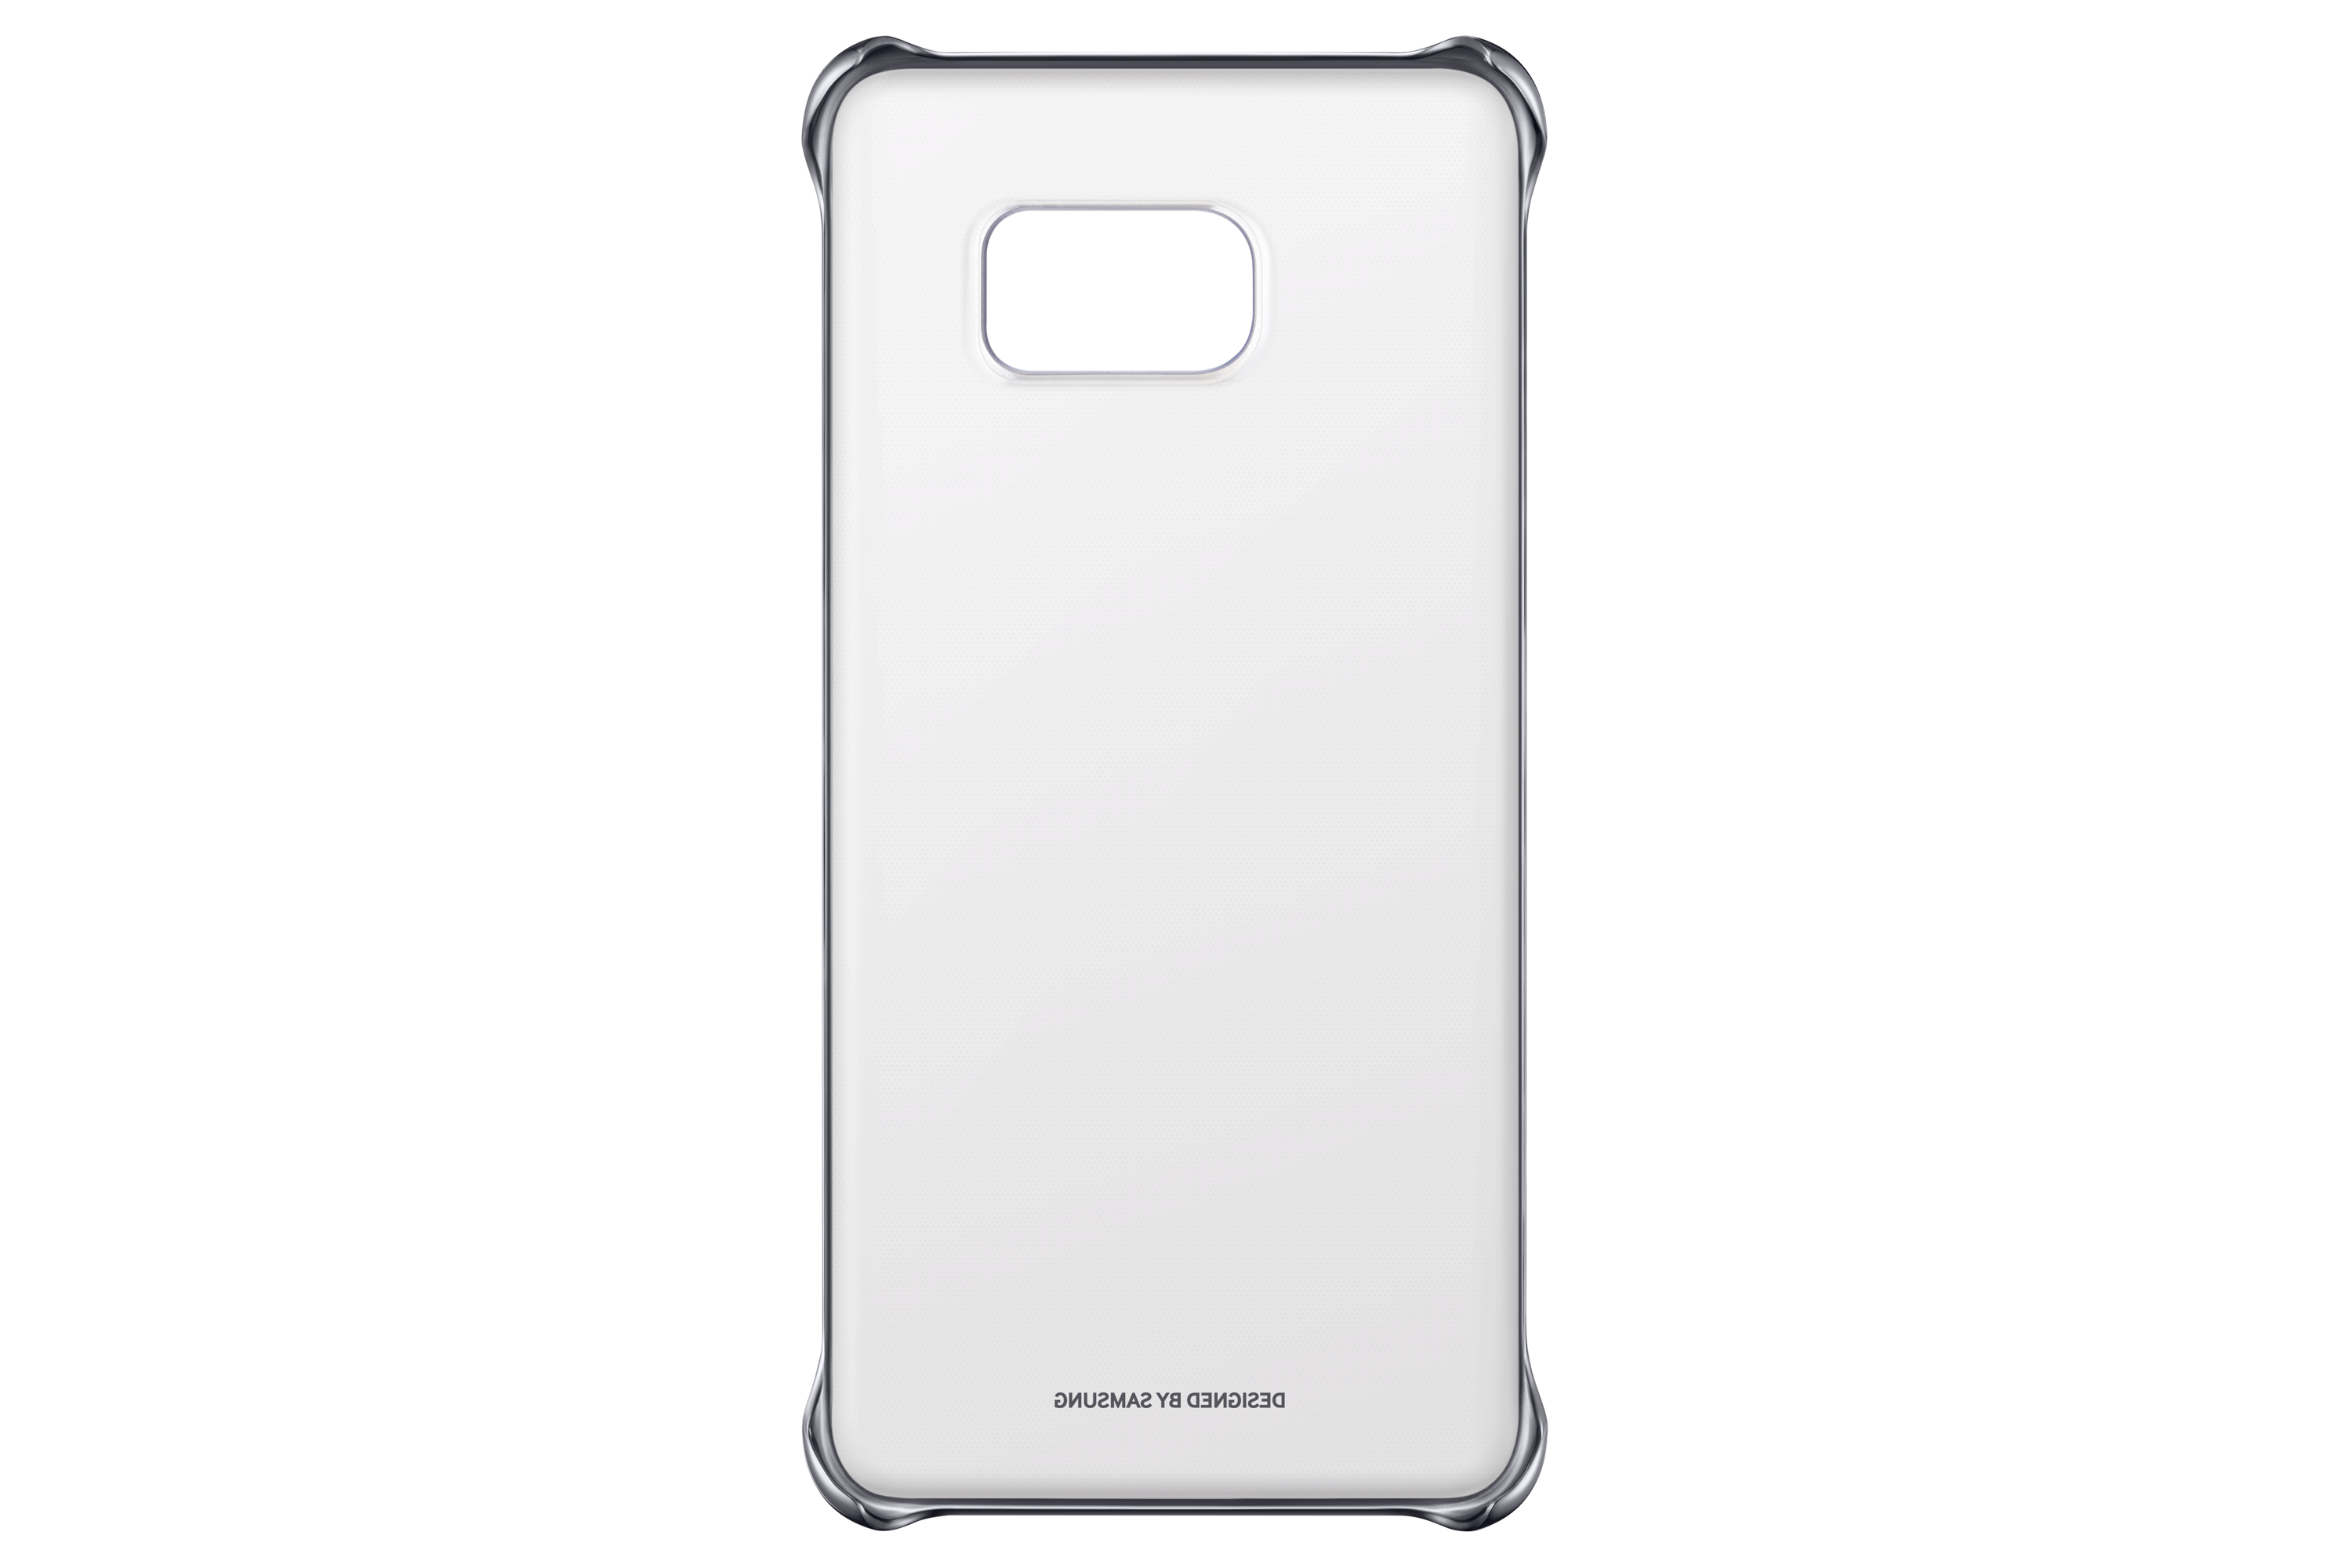 S6 edge+ Clear Cover EF-QG928C